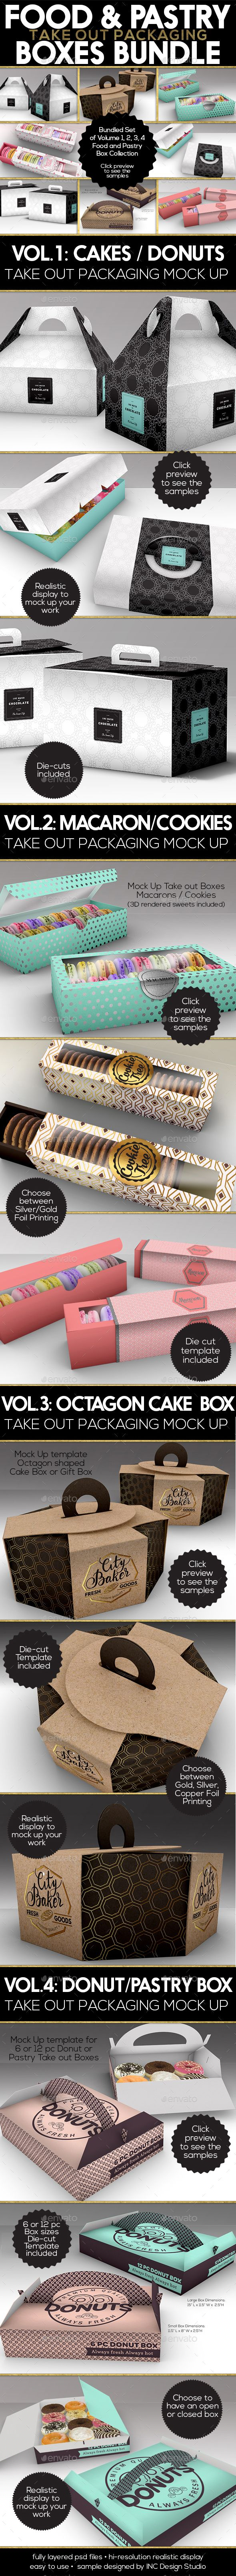 Food Pastry Boxes Mock Up Bundle: Take out Packaging Mock Ups by ina717 Food and Pastry Box Mock Up BundleThis bundle contains 4 volumes of the Food and Pastry Box CollectionA total of 13 PSD mock-ups